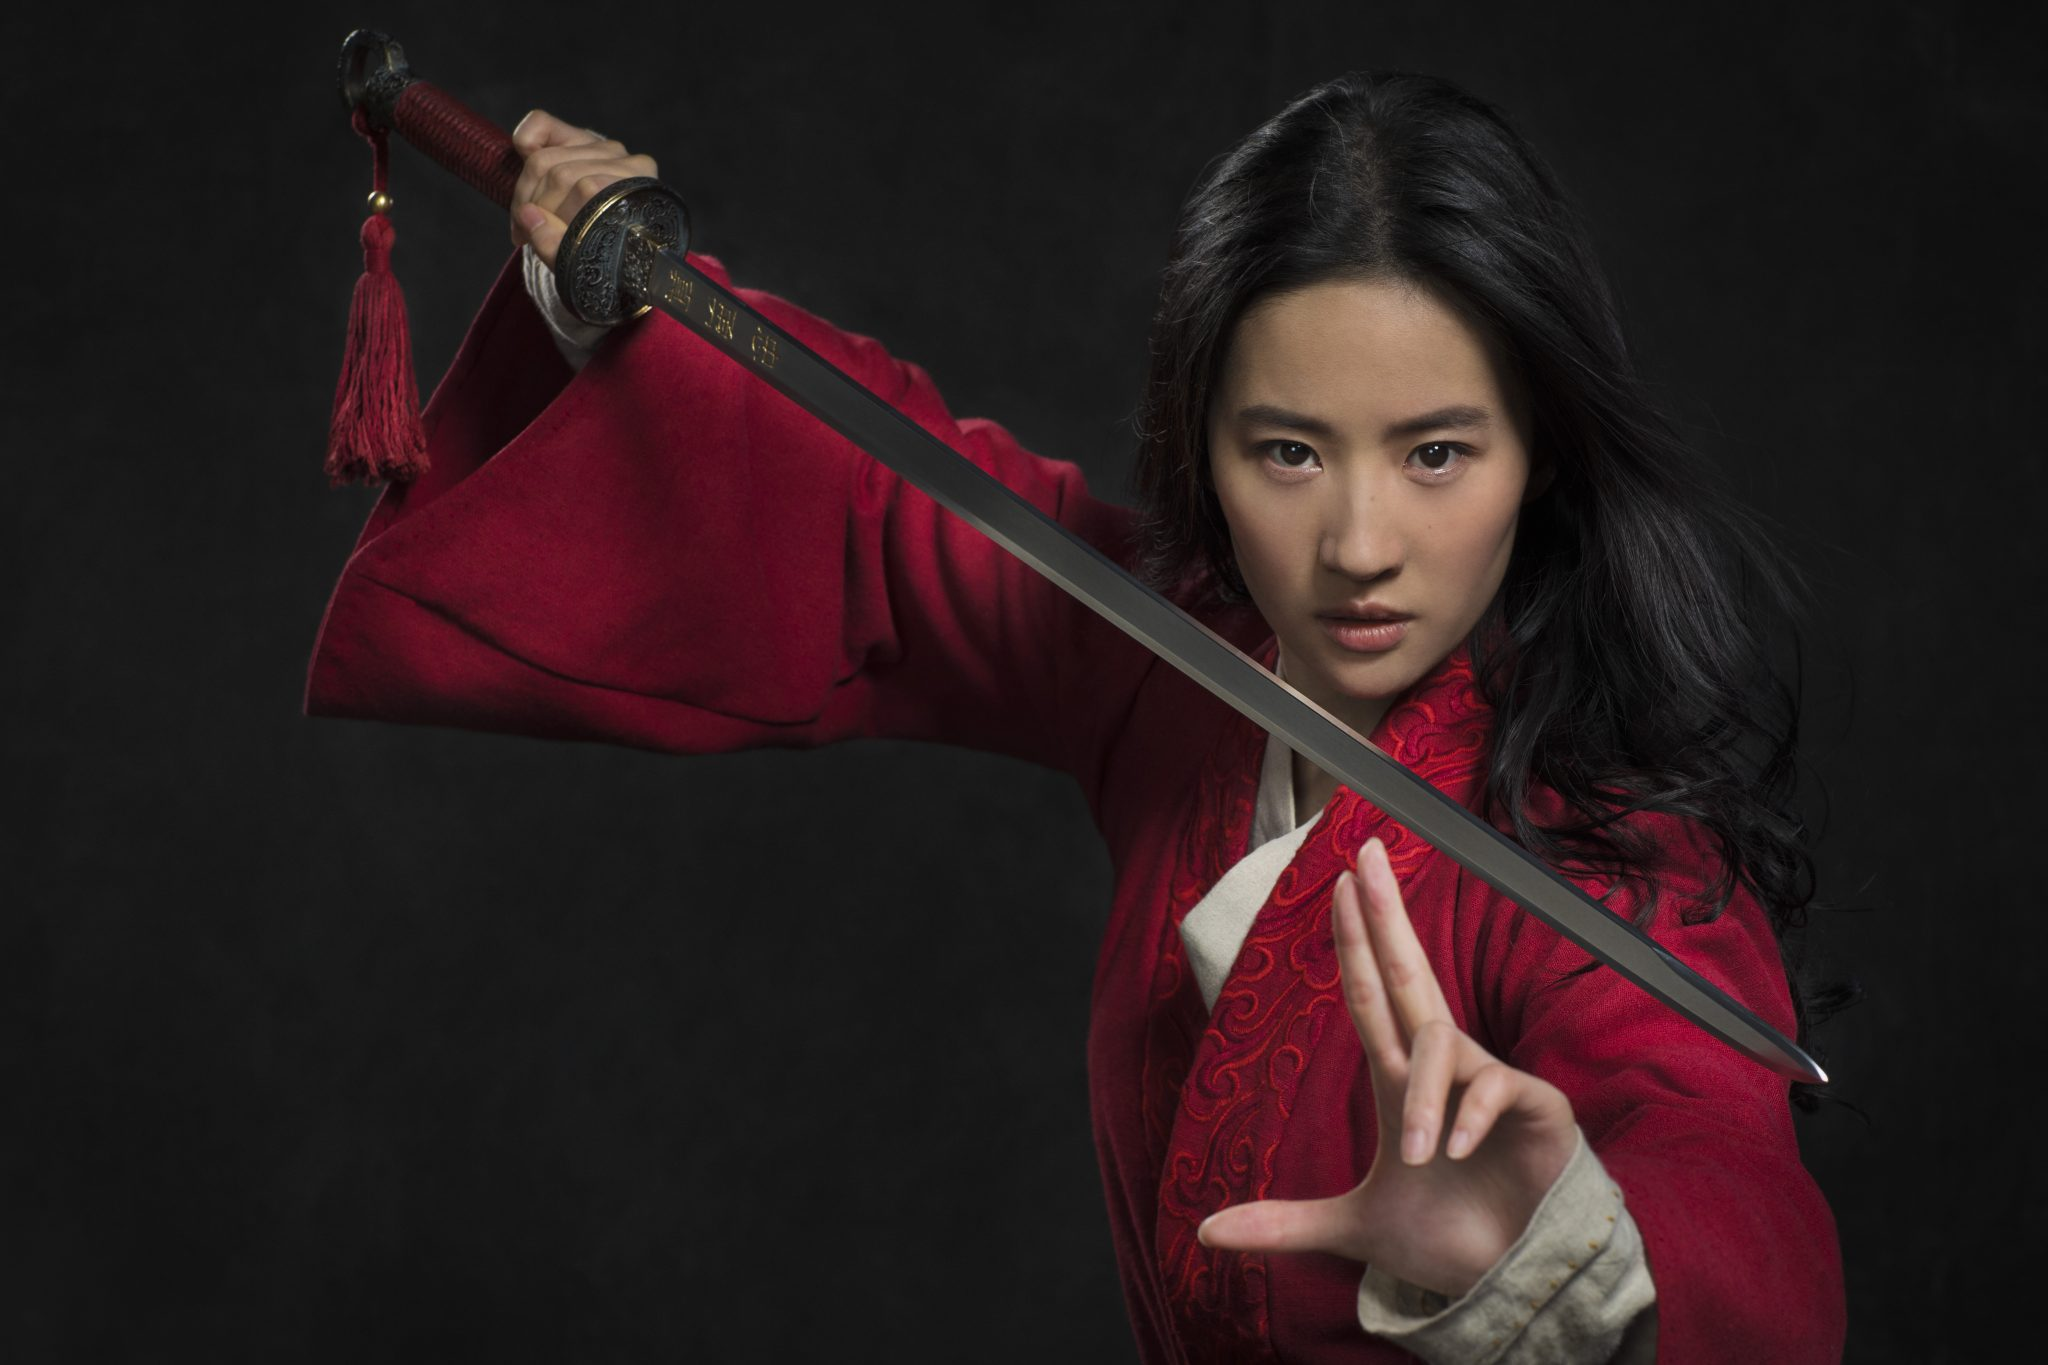 First Look: Disney's Live-Action MULAN